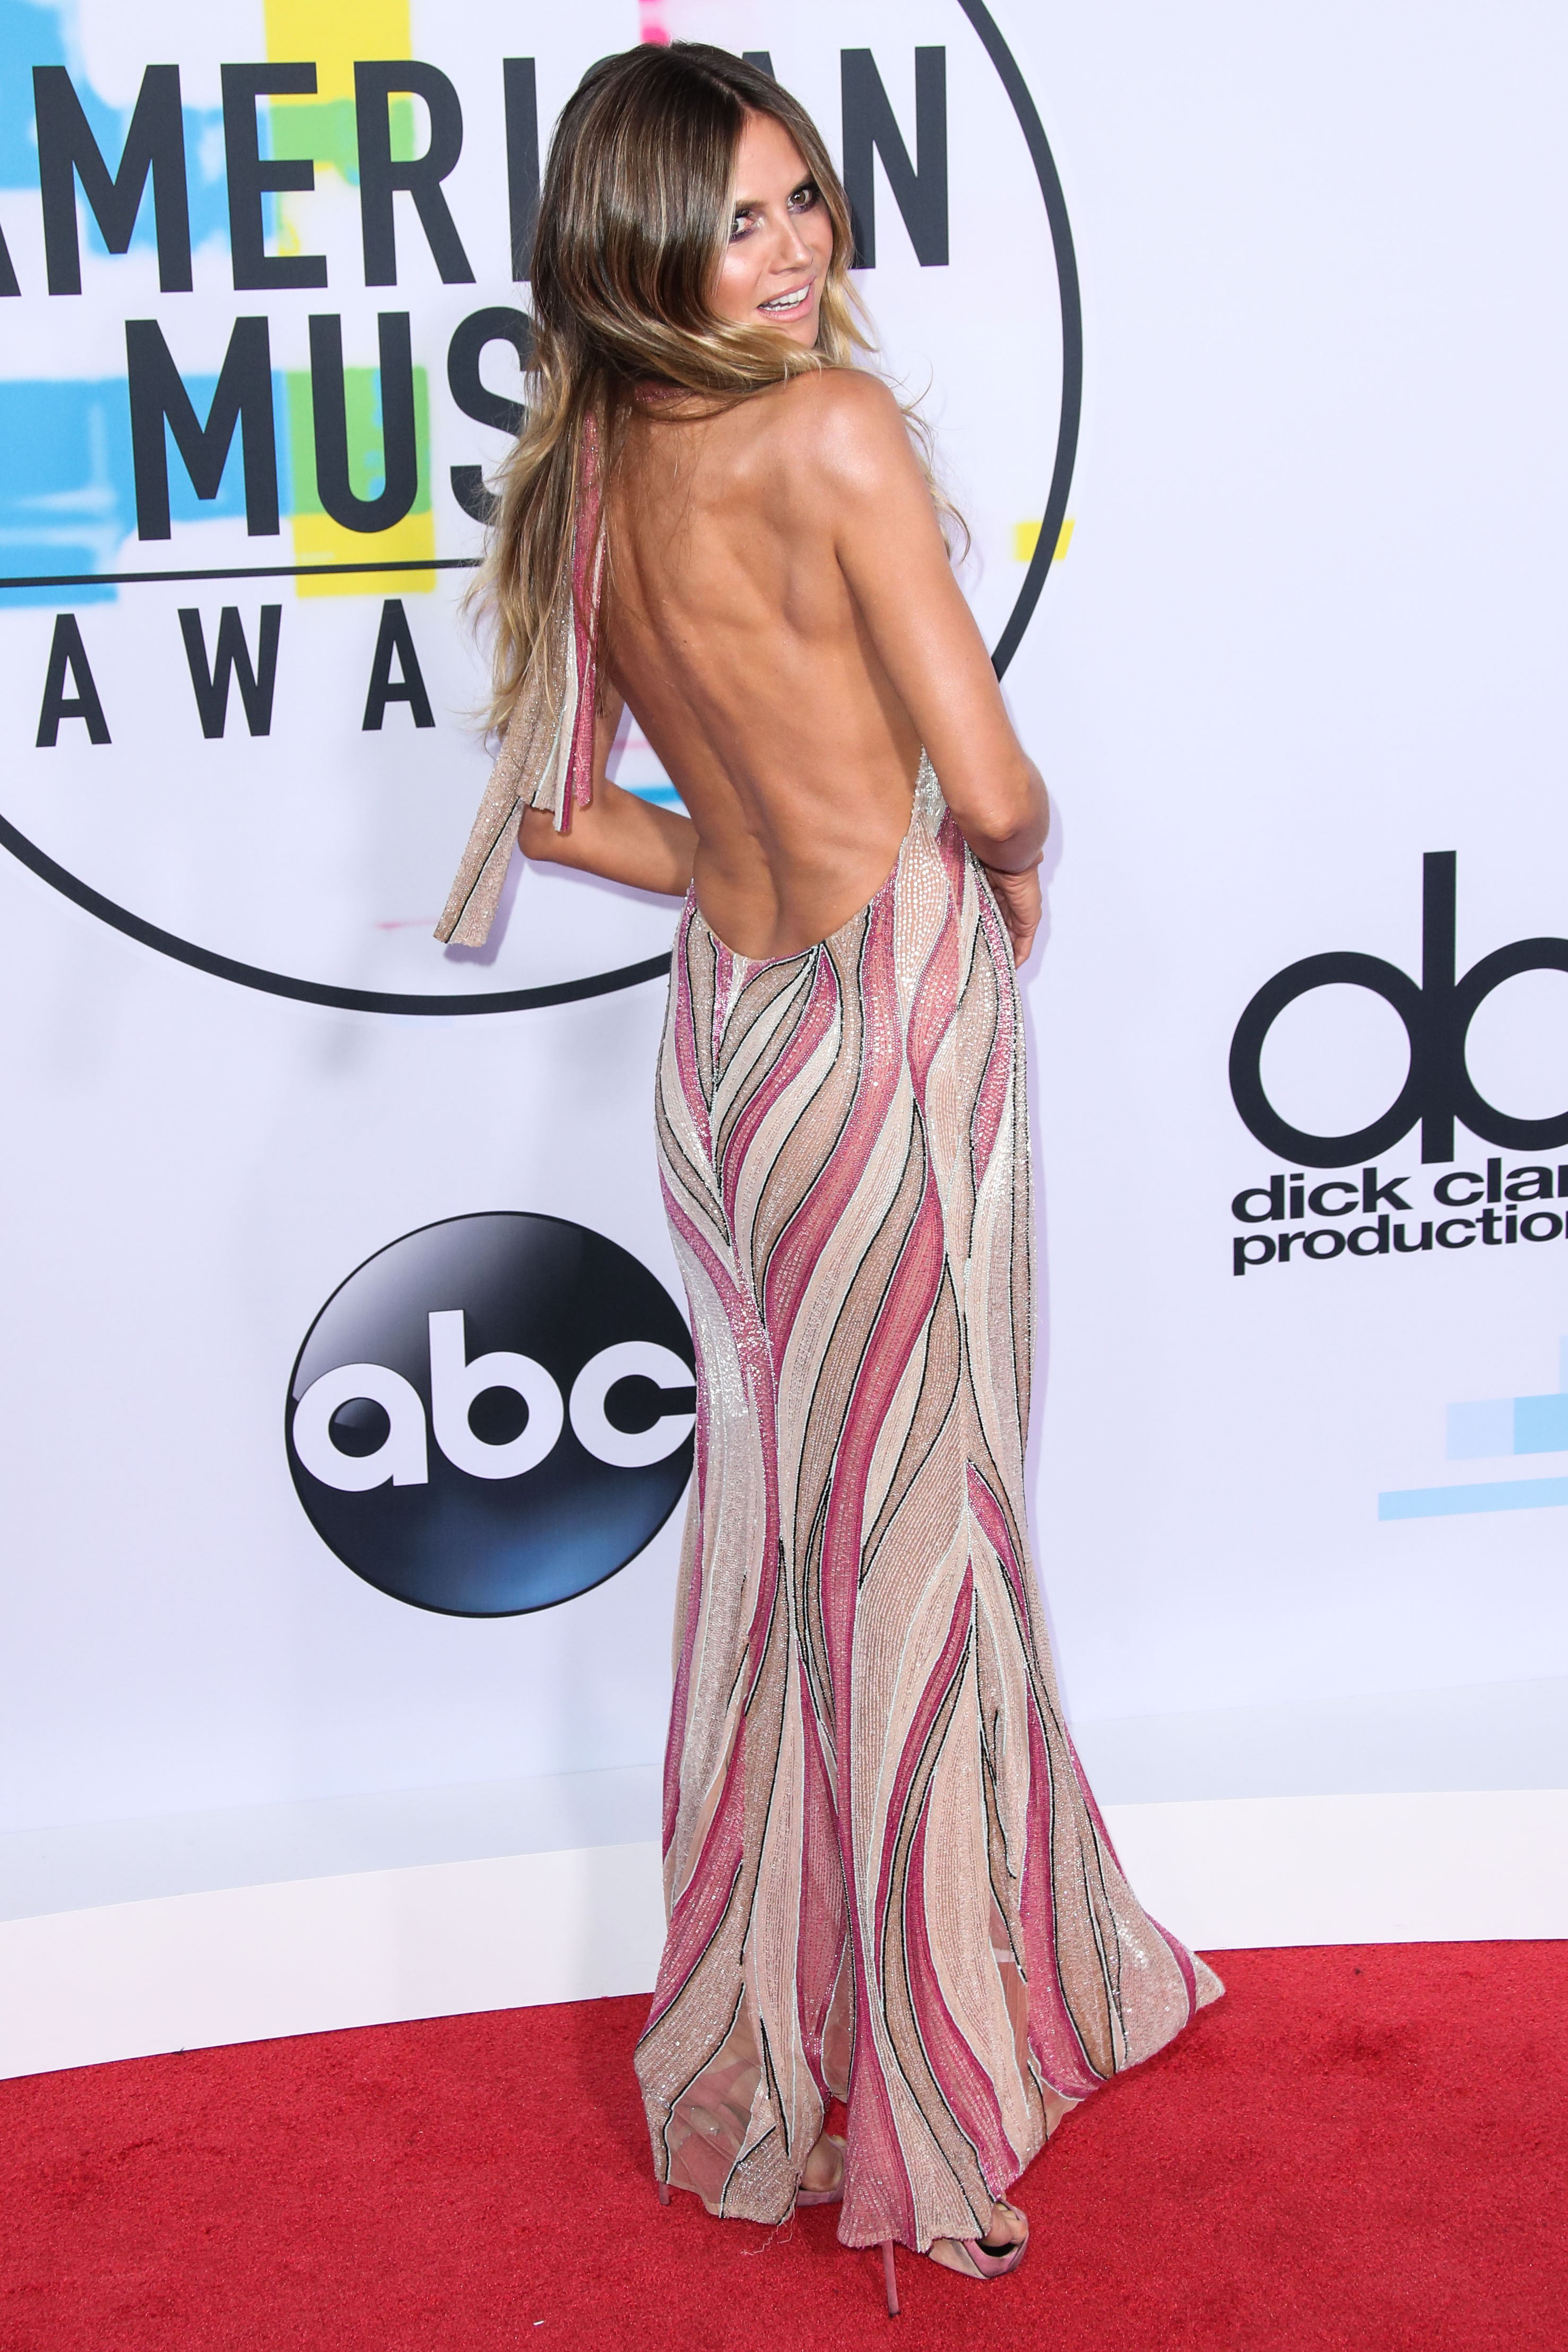 LOS ANGELES, CA, USA - NOVEMBER 19: 2017 American Music Awards held at the Microsoft Theatre L.A. Live on November 19, 2017 in Los Angeles, California, United States. (Photo by Xavier Collin/Image Press Agency/Splash News) <P> Pictured: Heidi Klum <B>Ref: SPL1627110  191117  </B><BR/> Picture by: Xavier Collin/IPA/Splash News<BR/> </P><P> <B>Splash News and Pictures</B><BR/> Los Angeles:310-821-2666<BR/> New York:212-619-2666<BR/> London:870-934-2666<BR/> <span id=